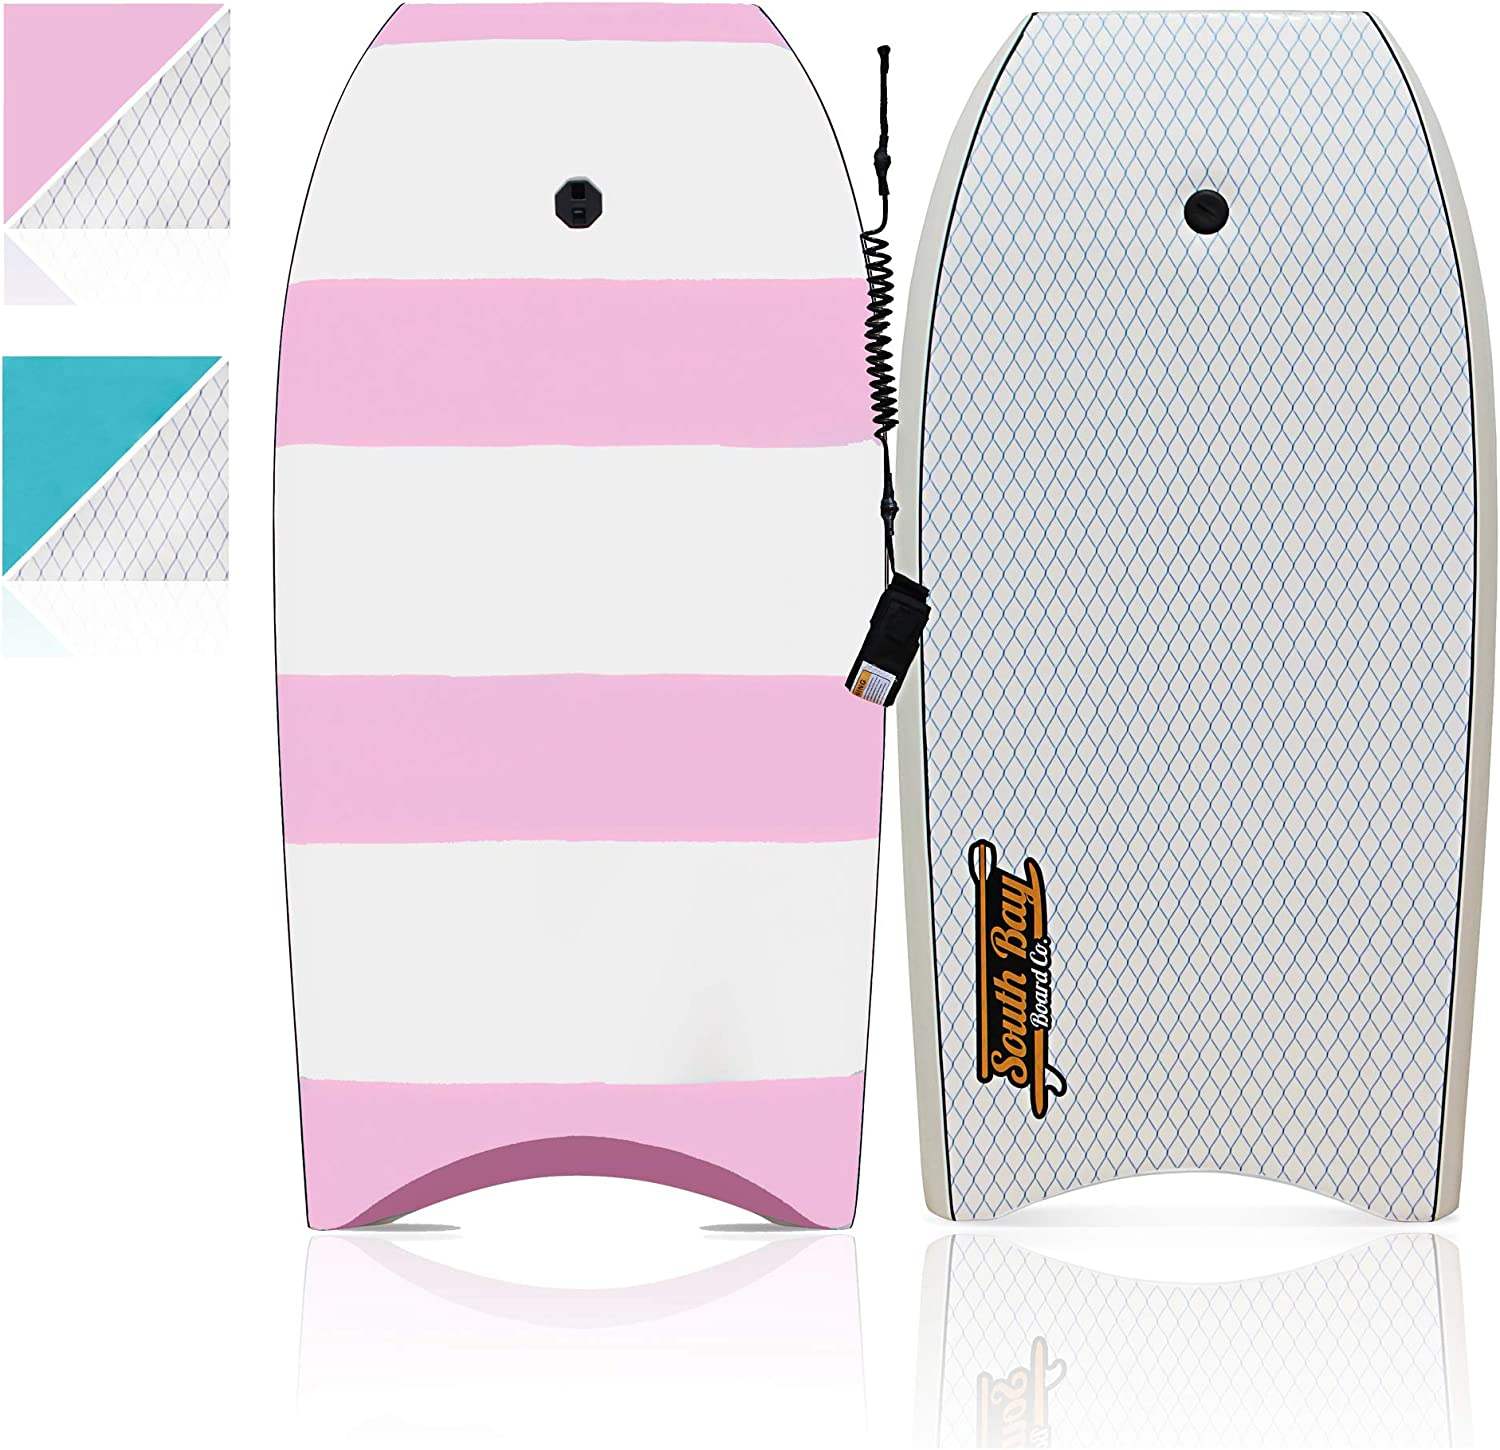 """South Bay Board Co Lightweight Body Board with EPS Core - 42/"""" Bodyboard Smooth Top Deck and Slick HDPE Bottom Deck Premium Beginner Body Board Durable"""